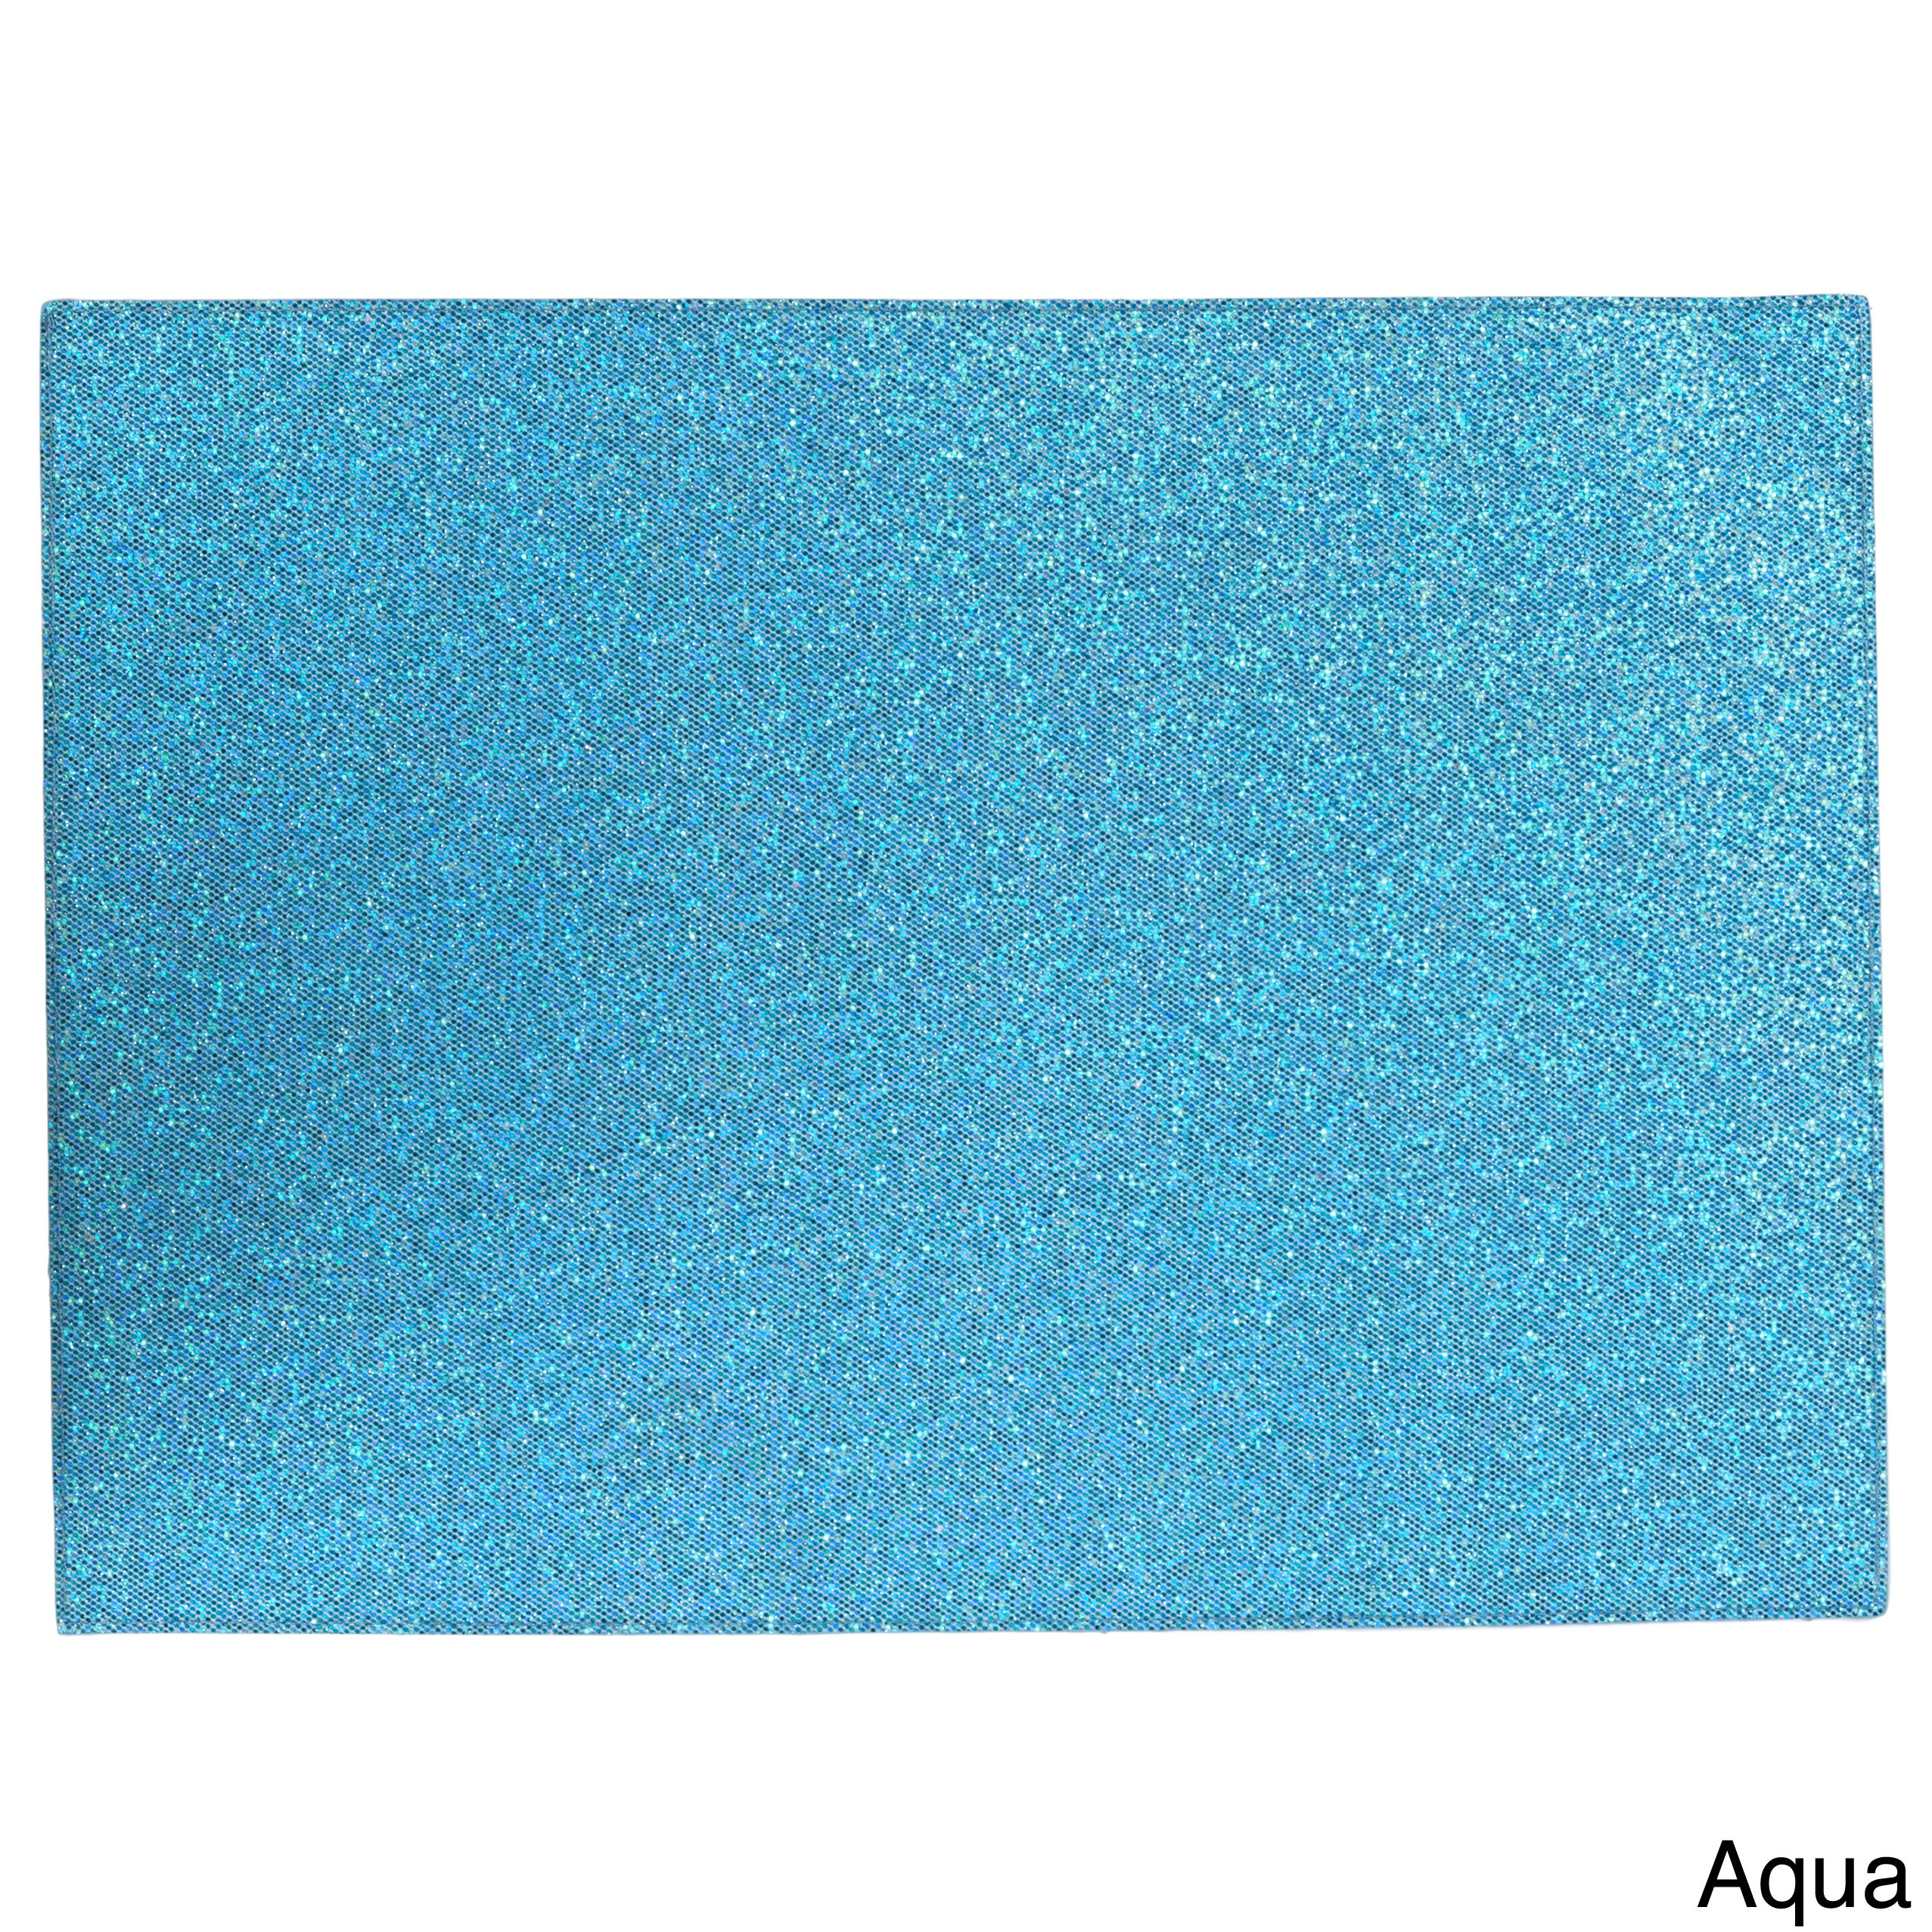 IMPULSE! Glitter Placemats (Set of 6)